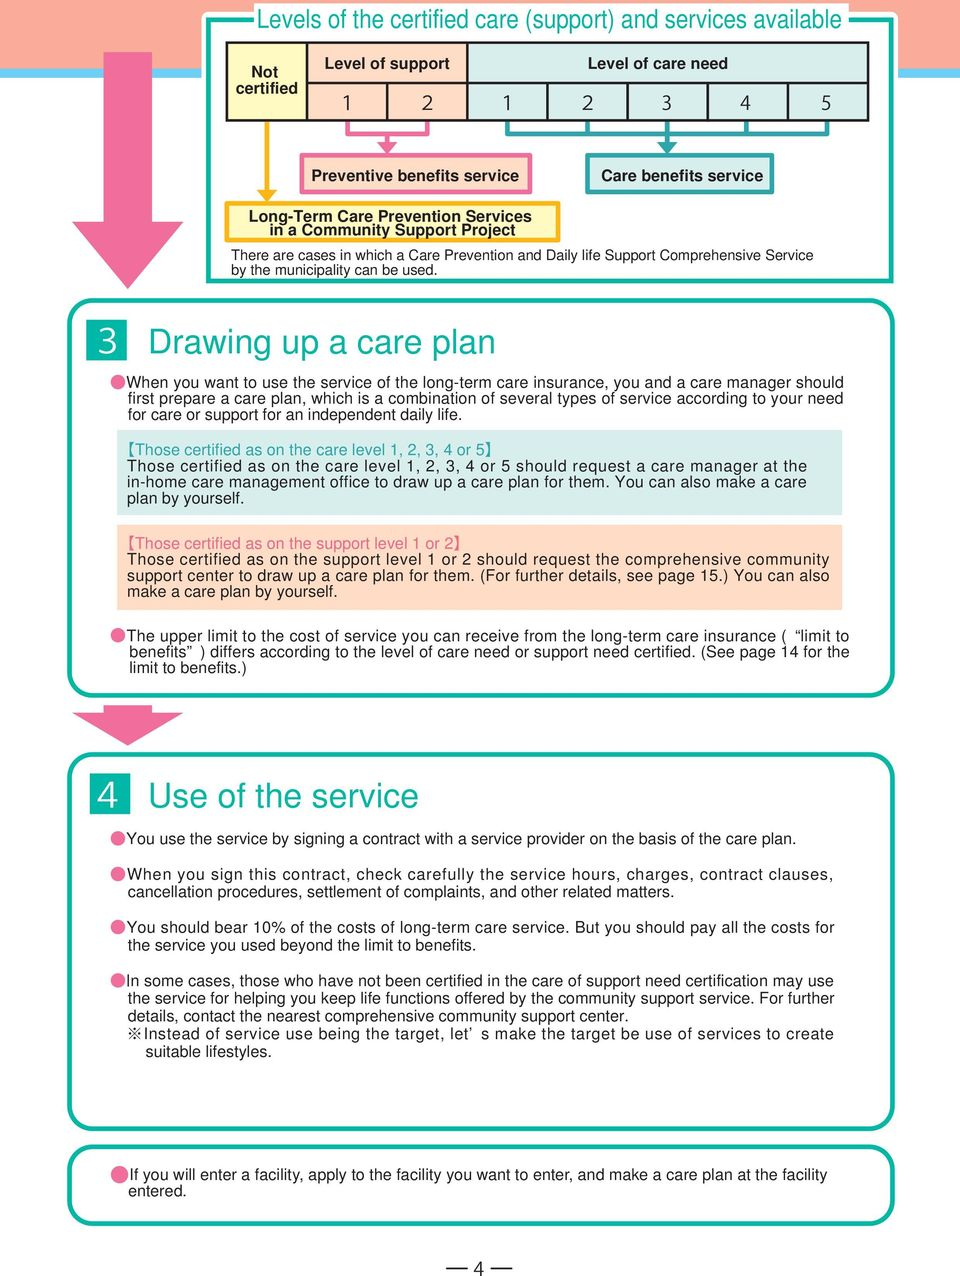 Drawing up a care plan When you want to use the service of the long-term care insurance, you and a care manager should first prepare a care plan, which is a combination of several types of service